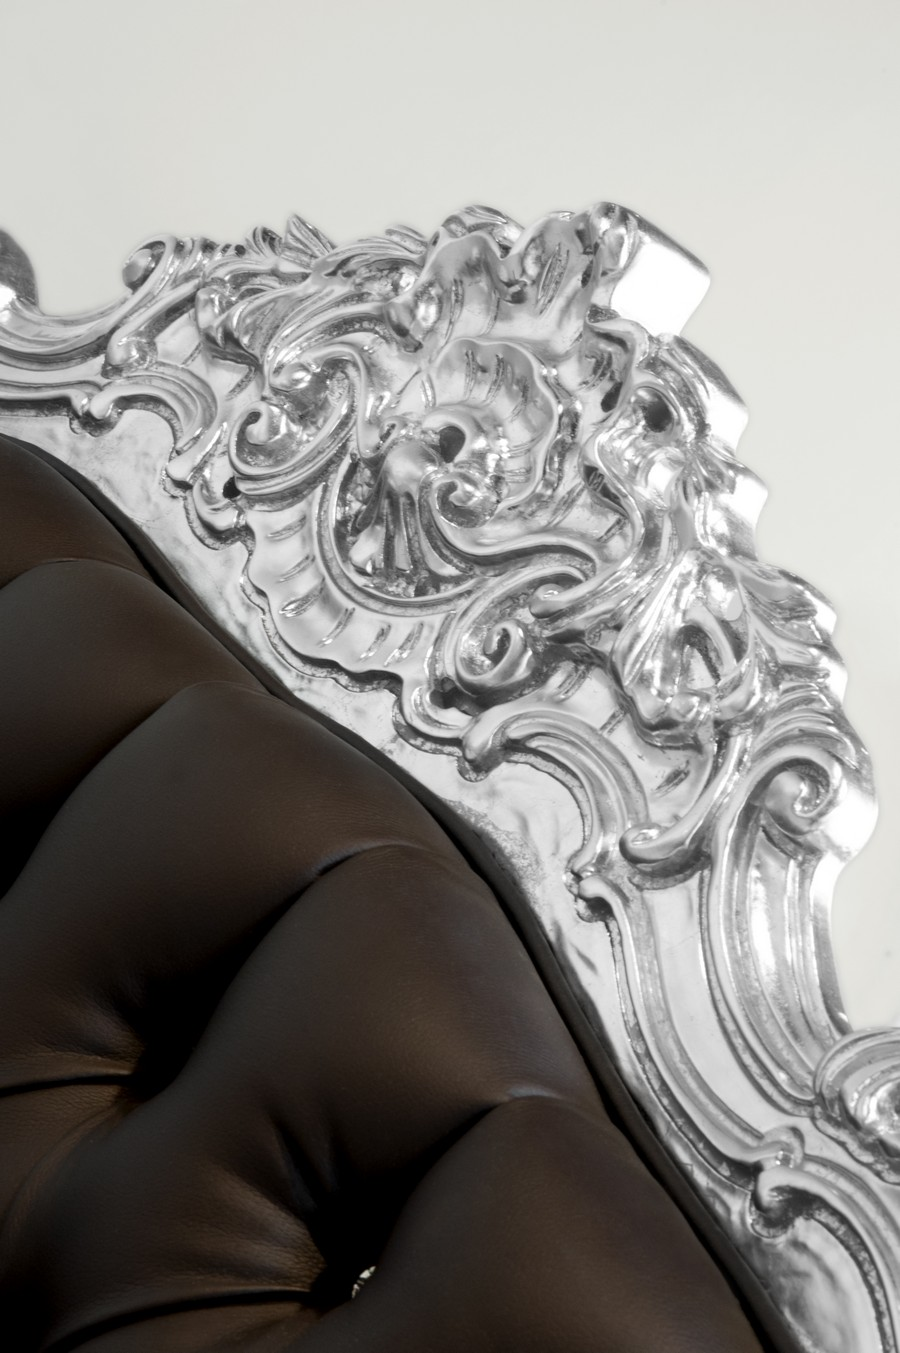 Intricate design of the car armchair